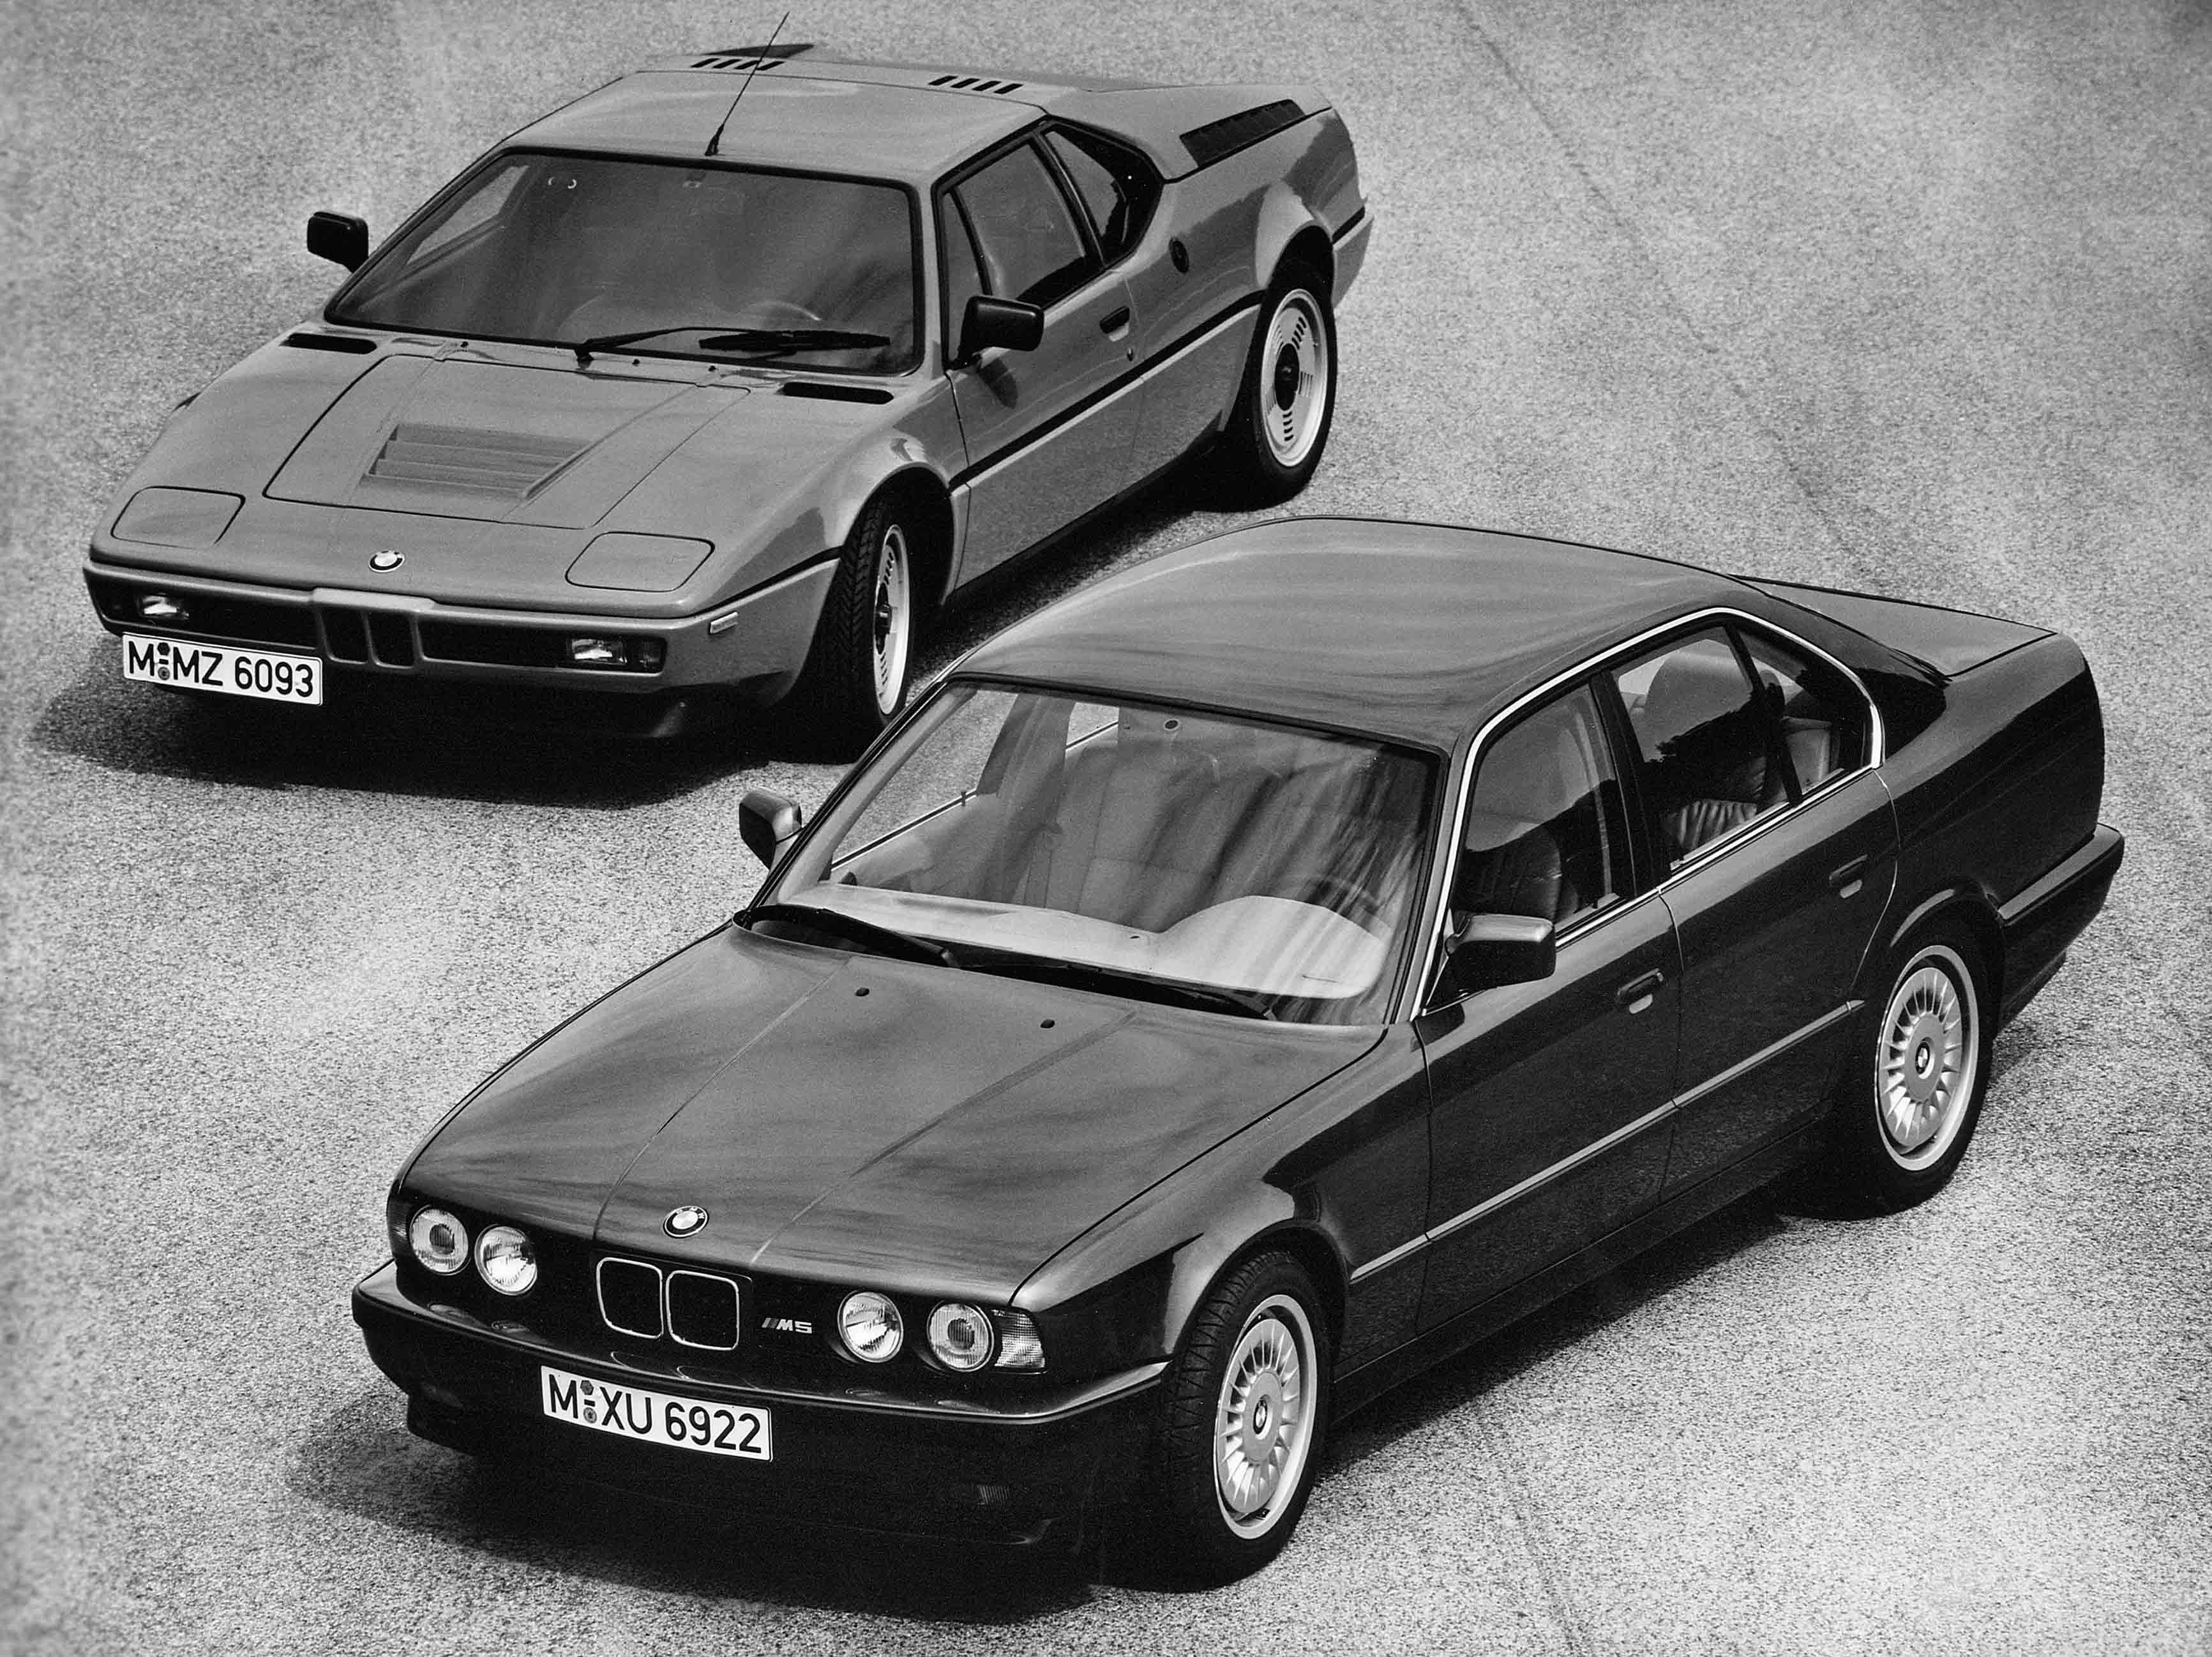 BMW M1 and M5 black and white